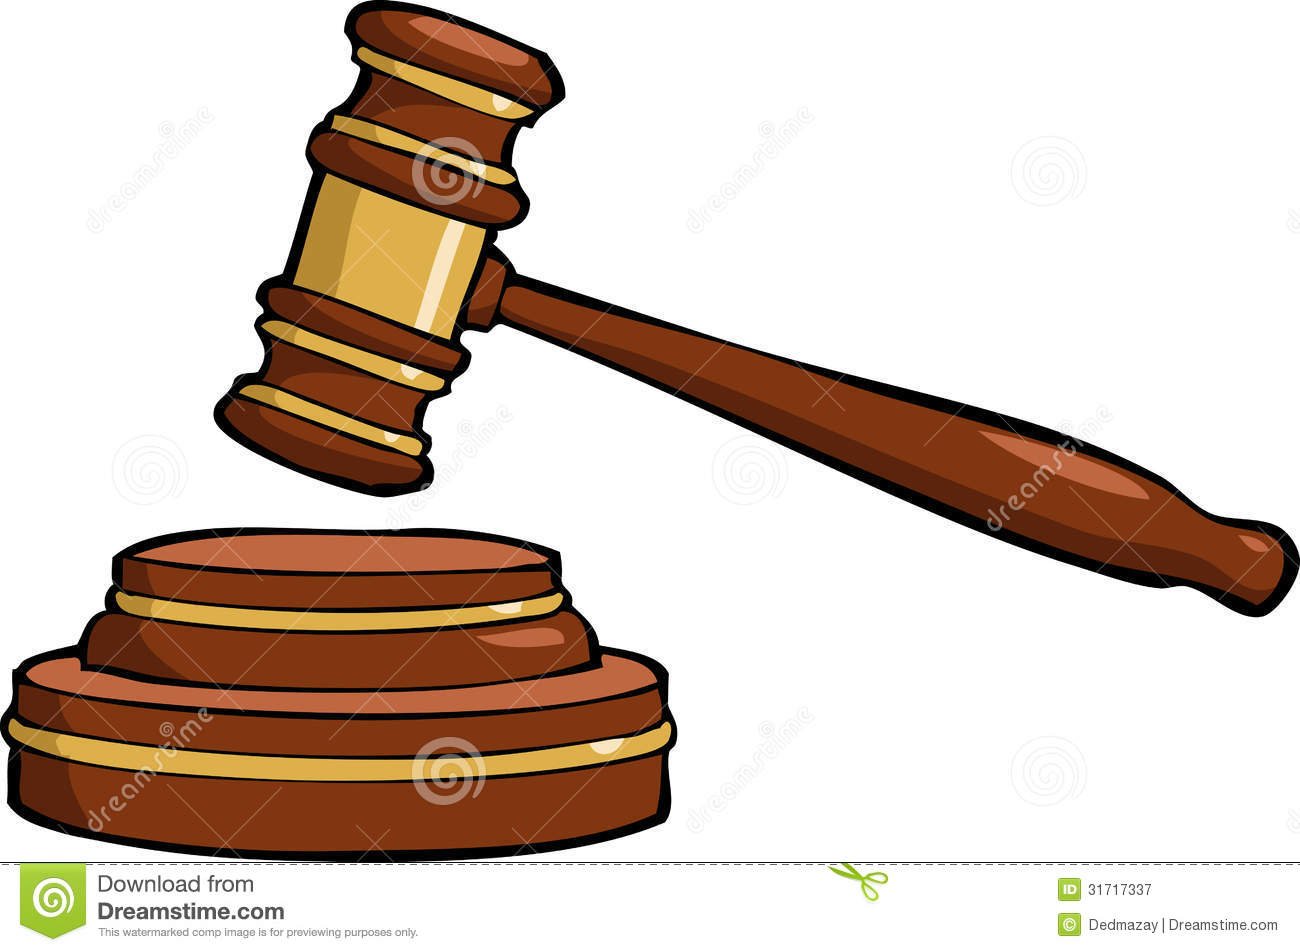 Judge mallet clipart png transparent library Judge Mallet Drawing   Free download best Judge Mallet Drawing on ... png transparent library